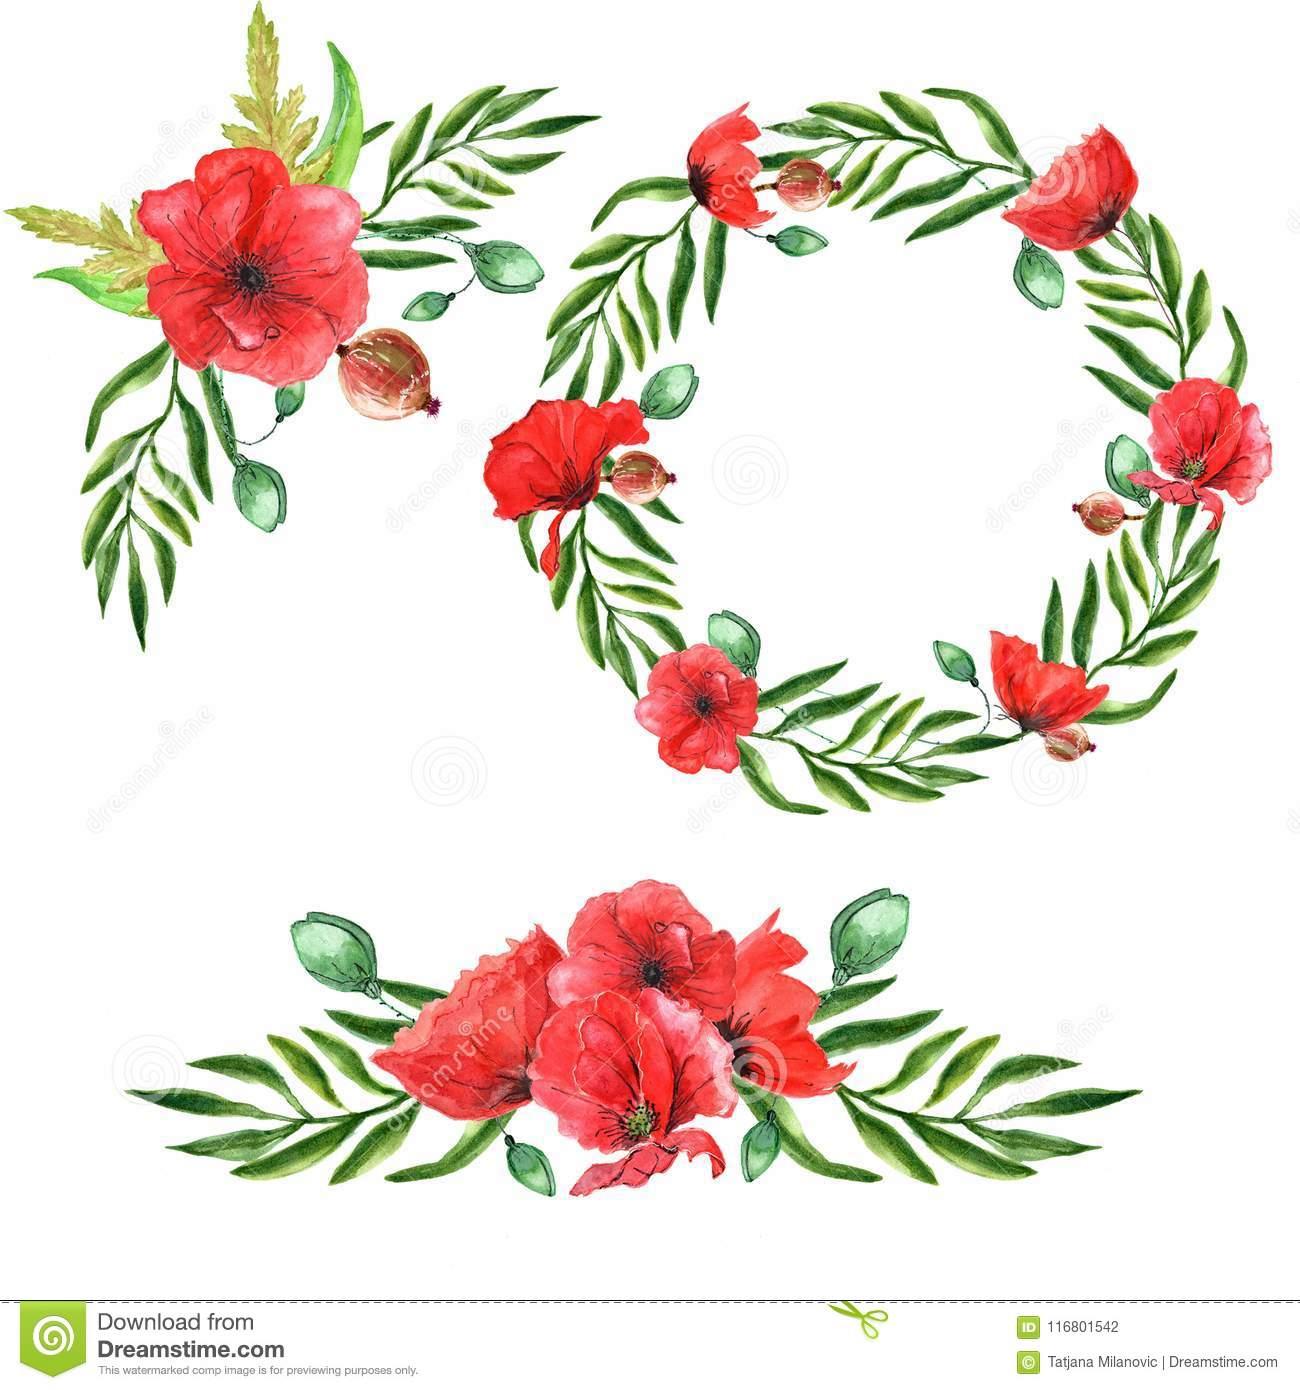 Watercolor Poppies Wreath And Bouquets, Set Of 3 Stock Illustration ...